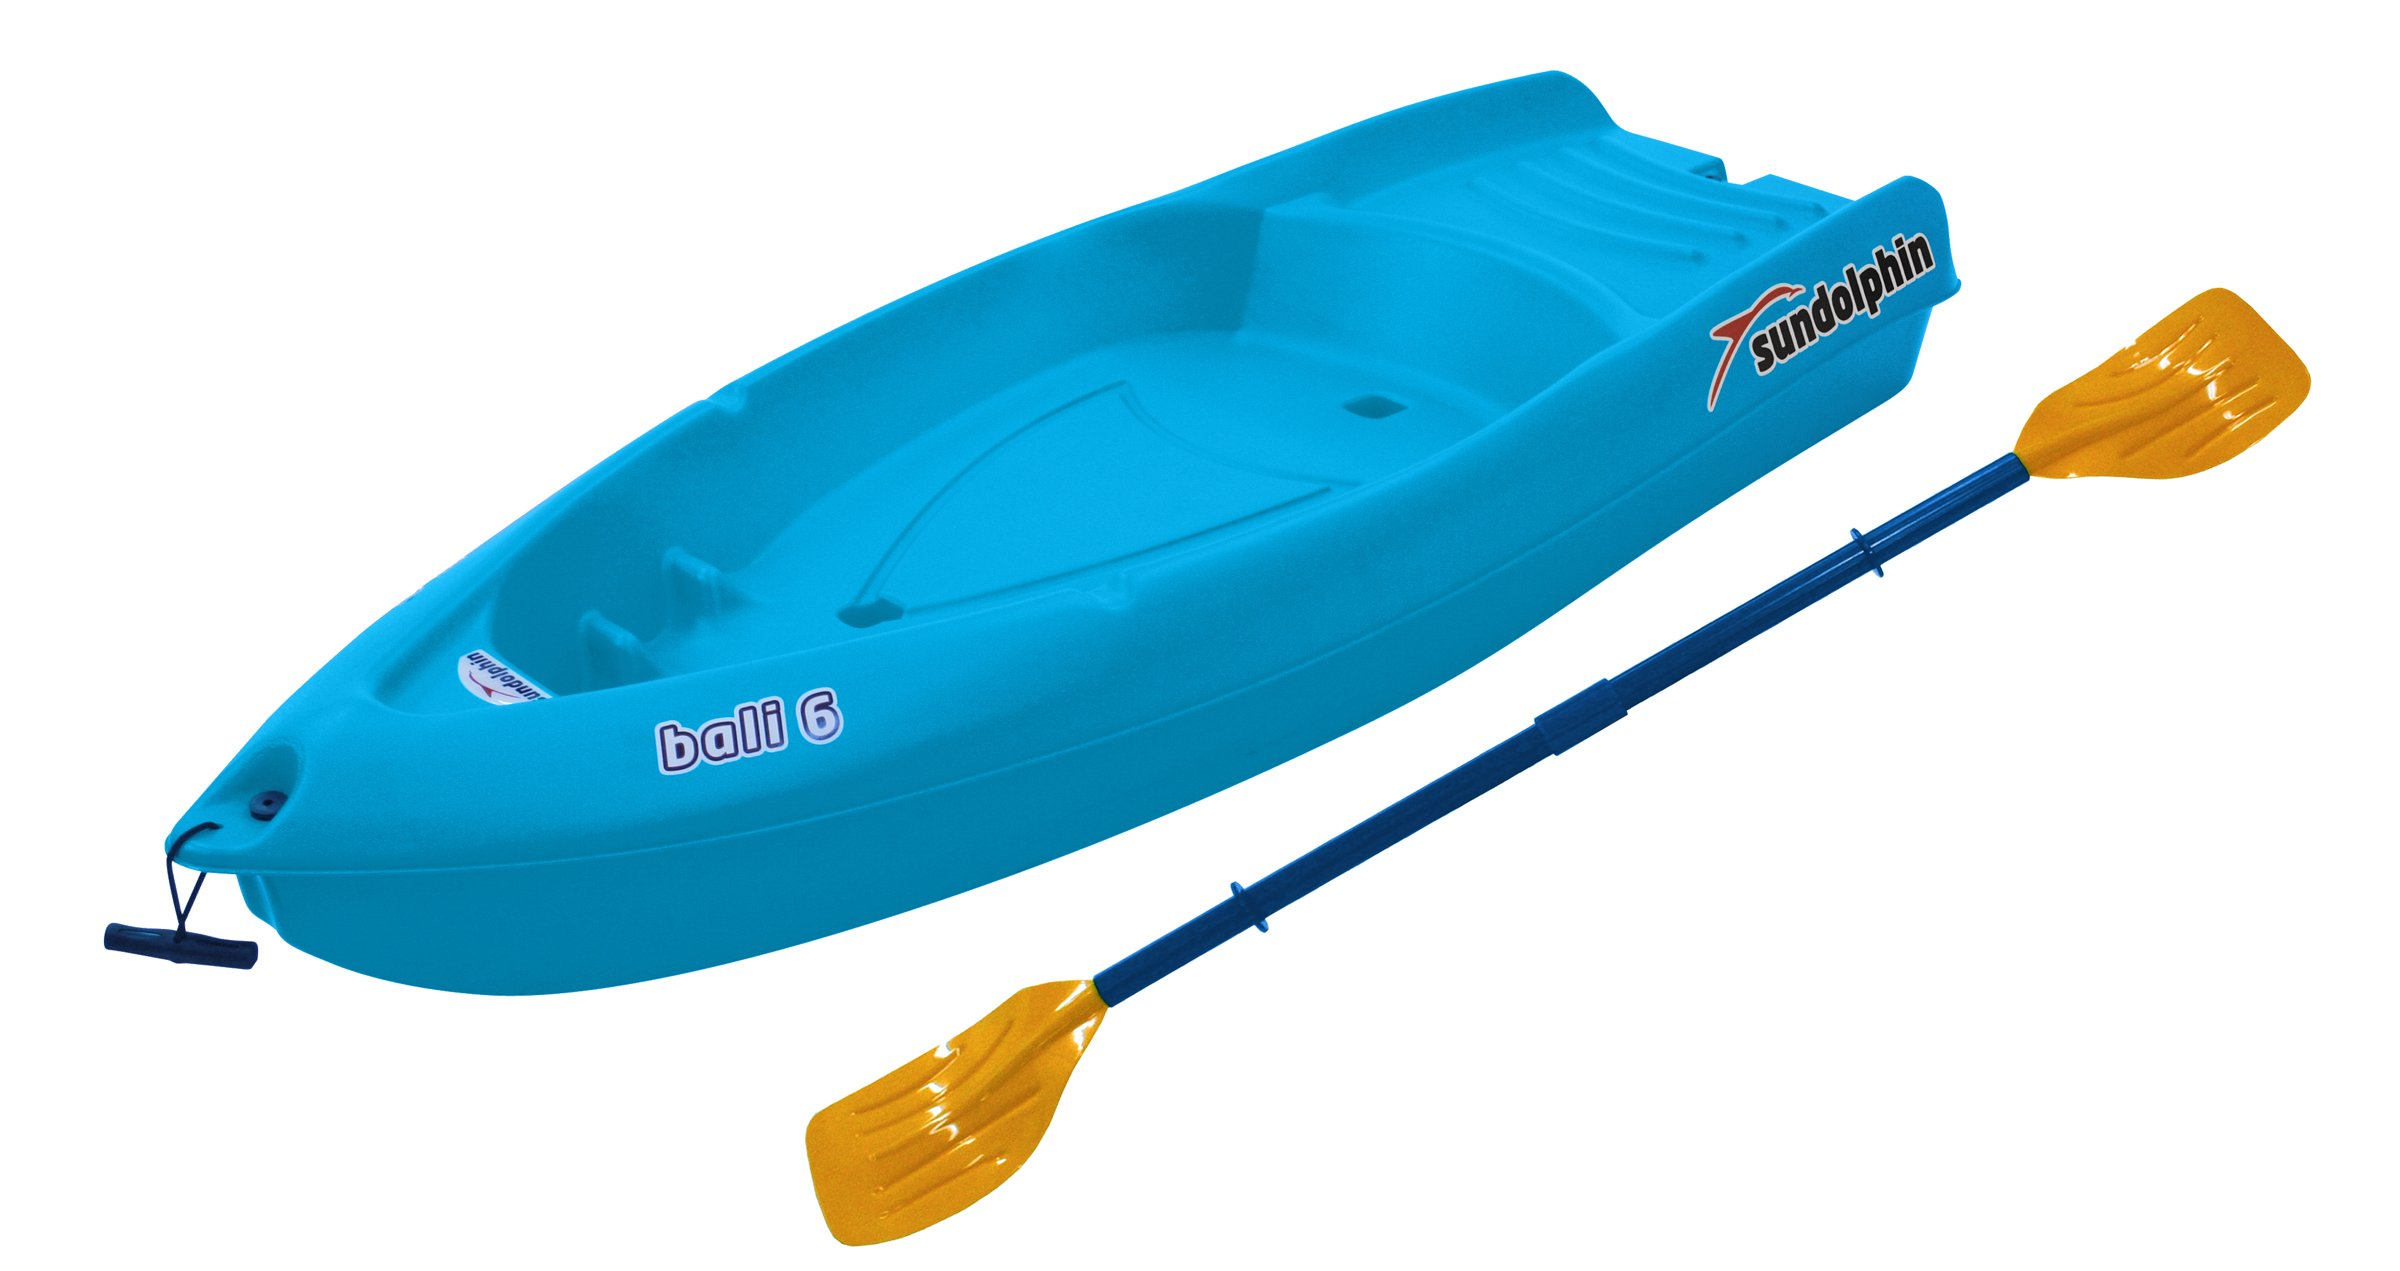 Sun Dolphin Bali Sit-on-top Kayak (Ocean, 6-Feet) by SUNDOLPHIN